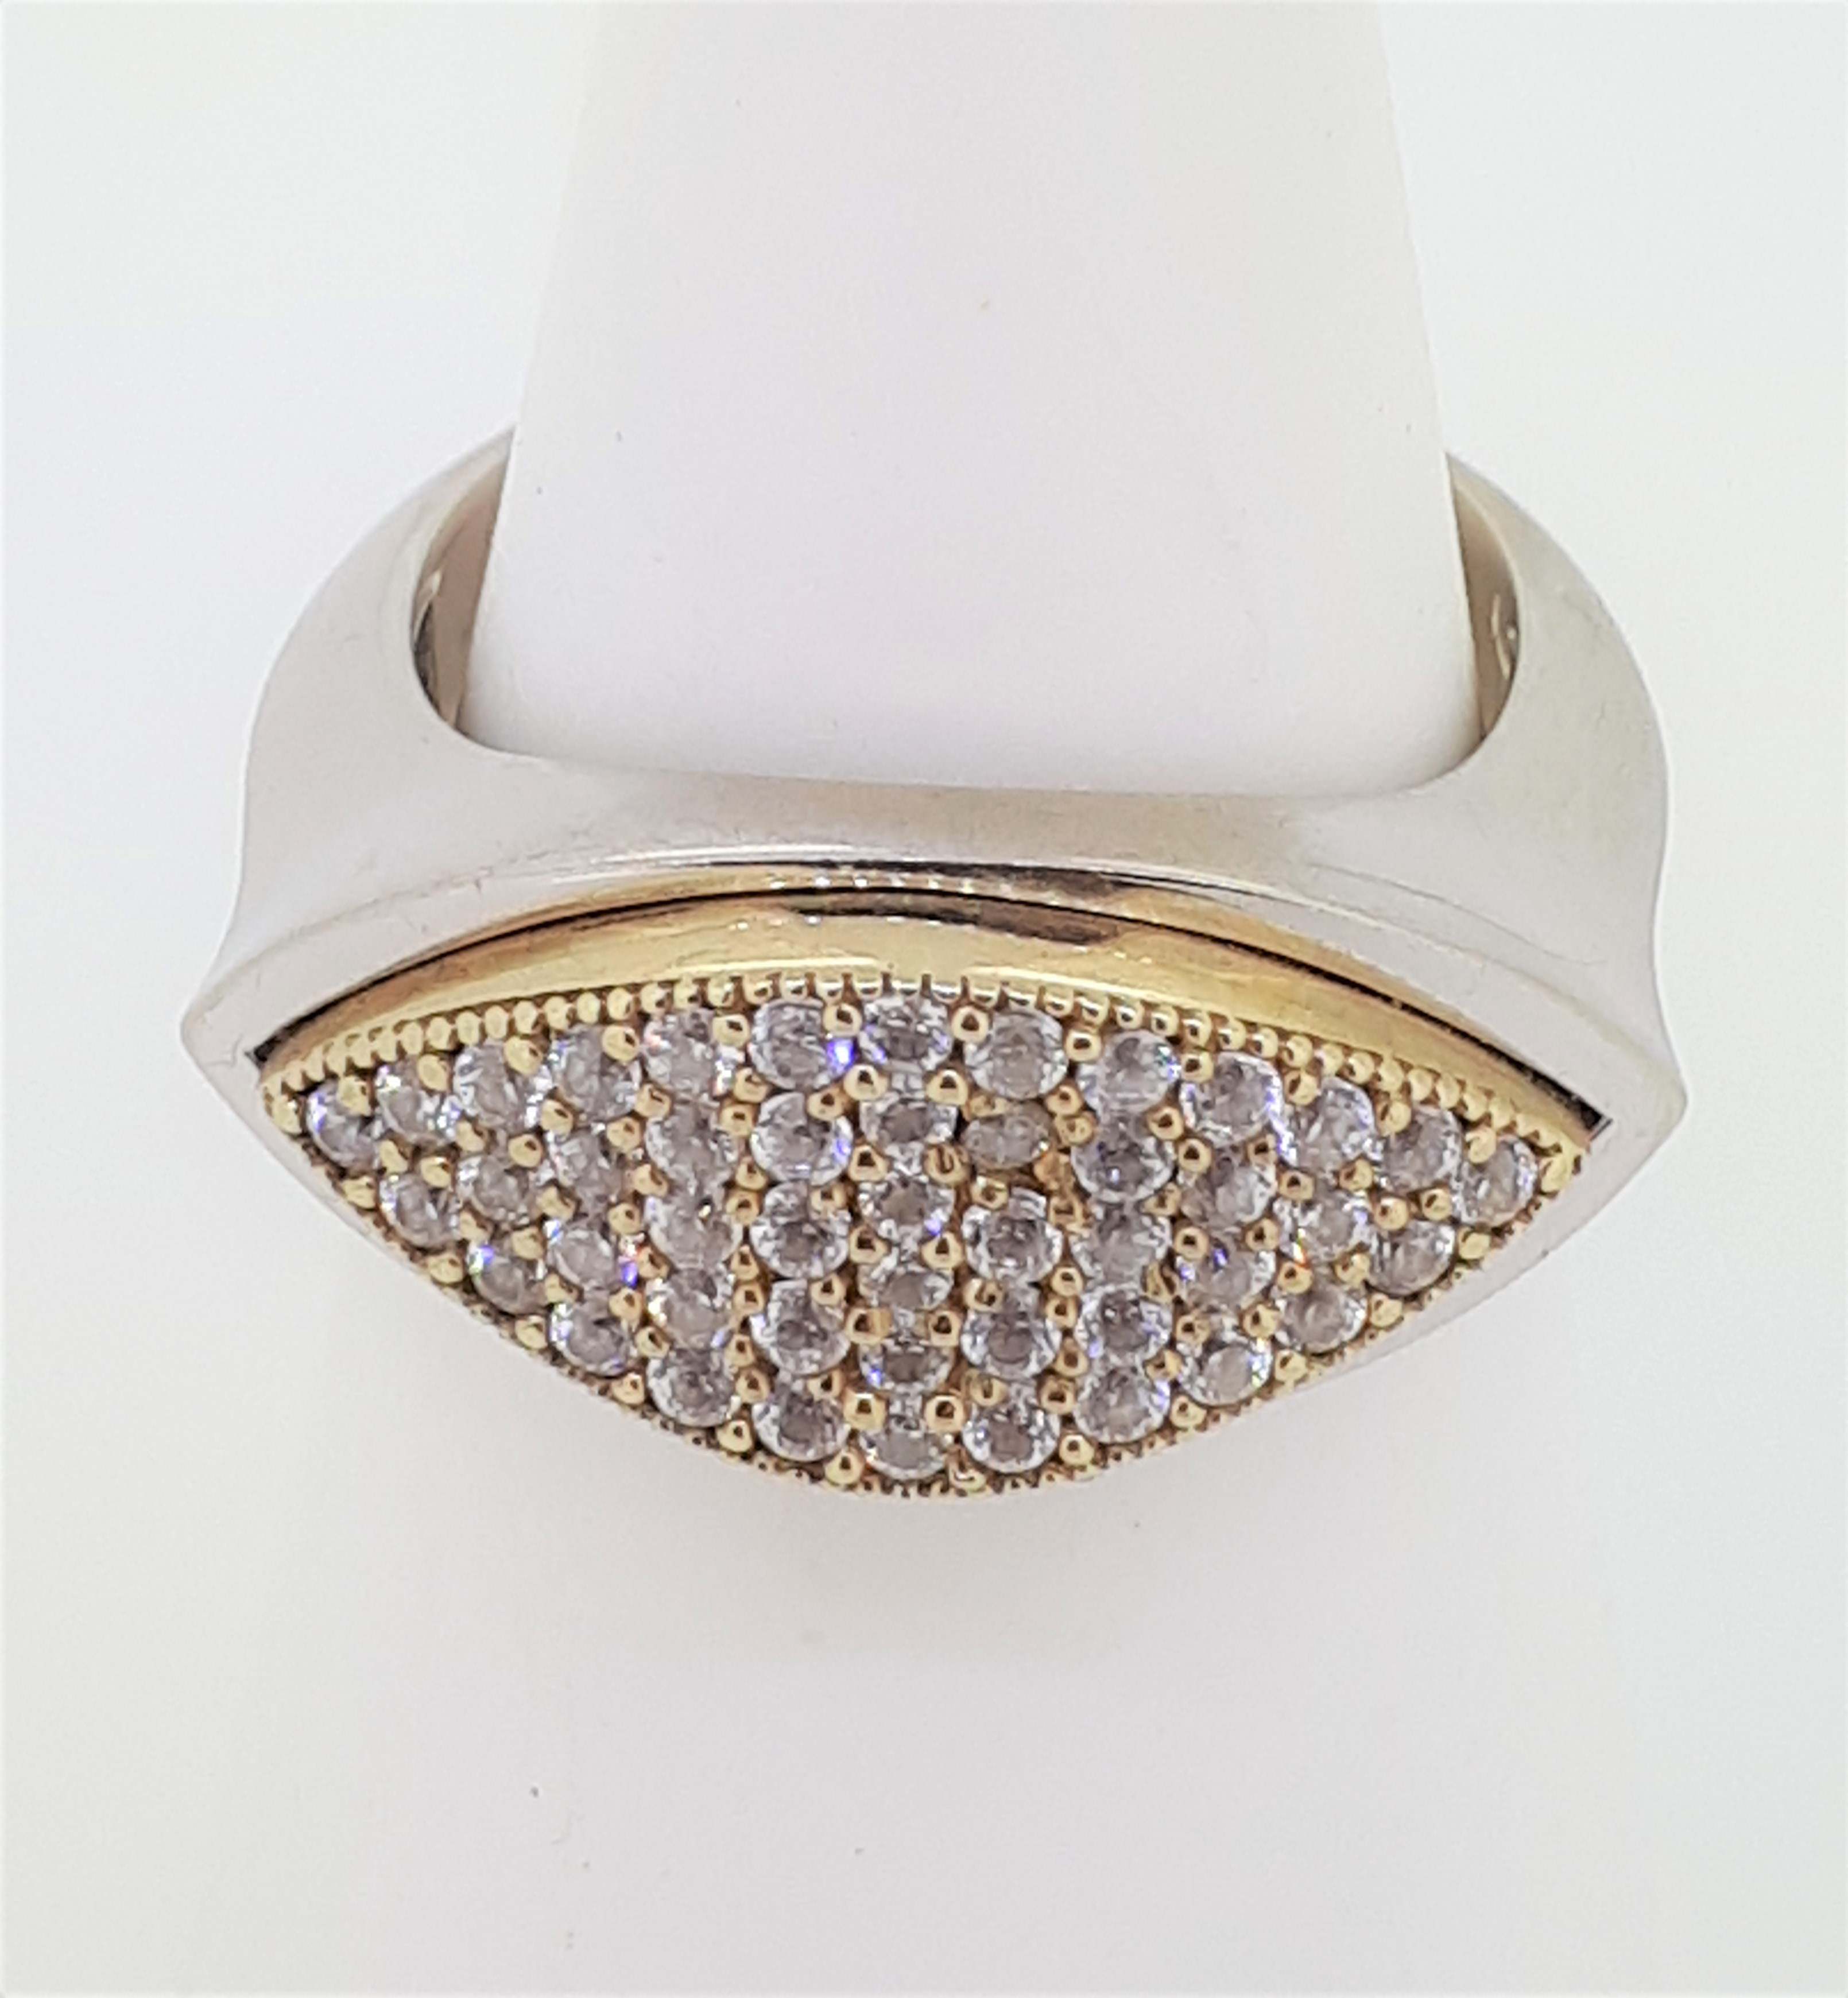 9ct (375) White & Yellow Gold Marquise-Shaped CZ Ring - Image 3 of 4